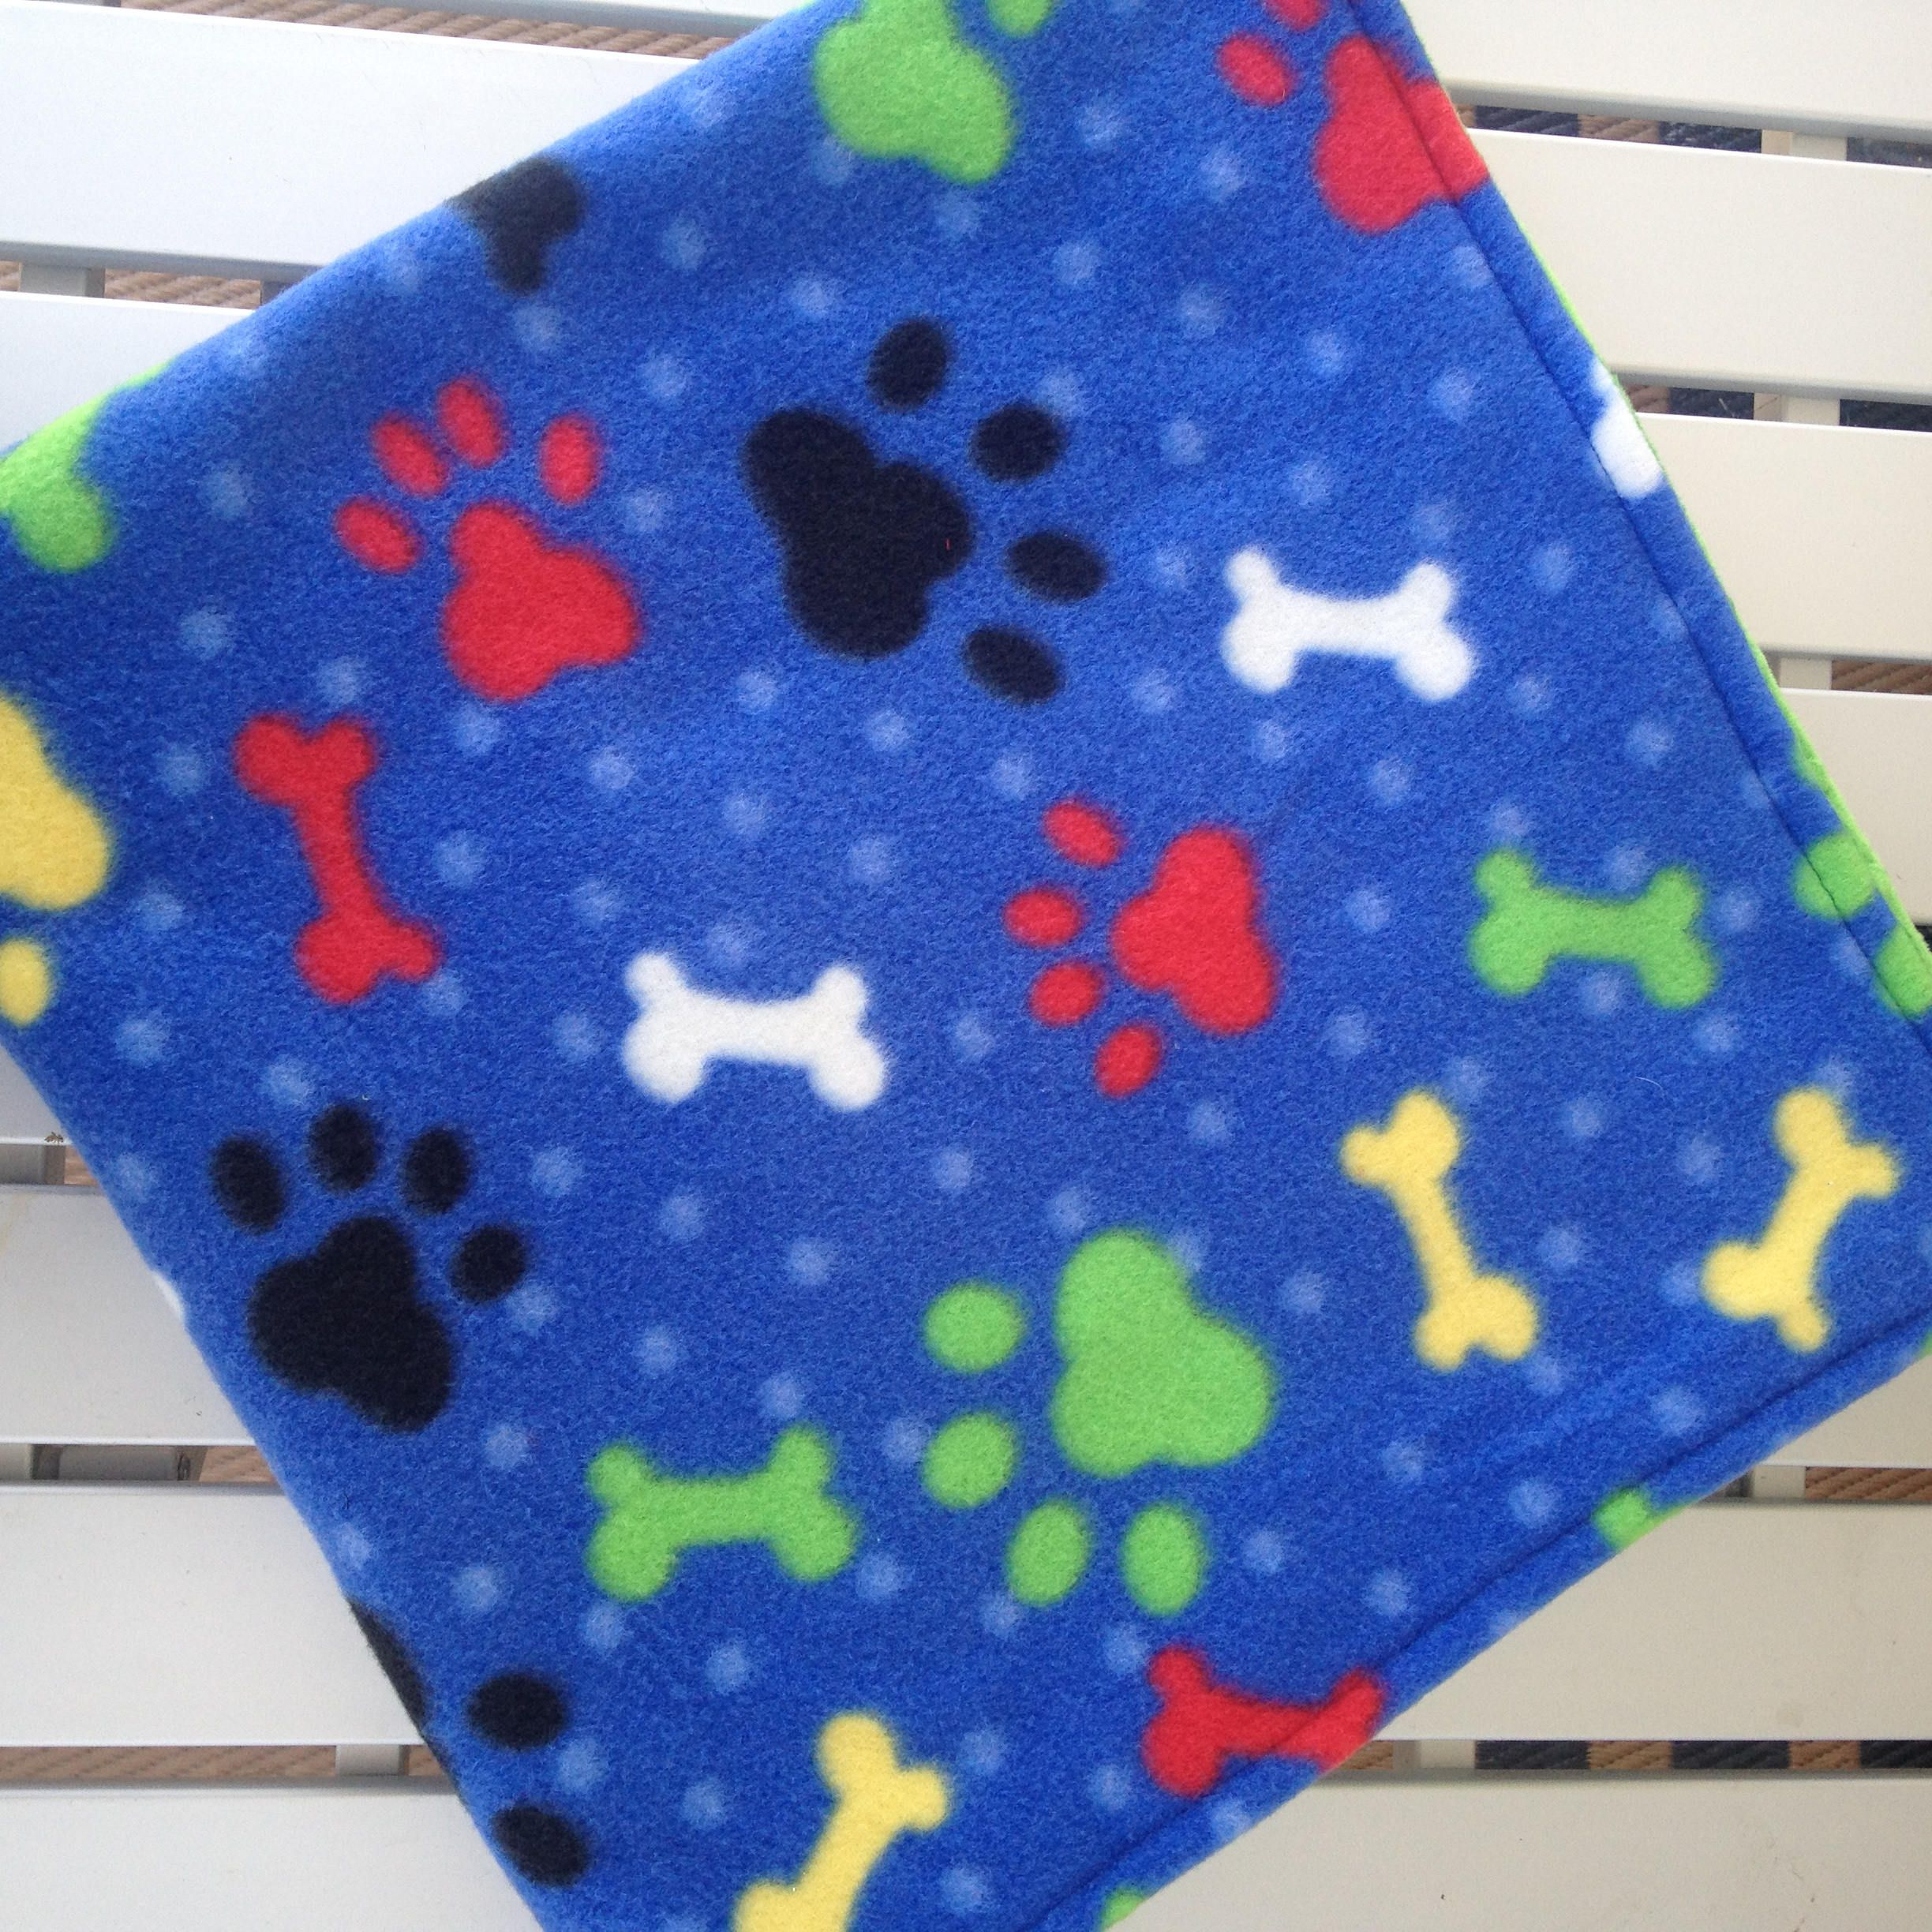 dd40eb1c05 Fleece Dog Blankets